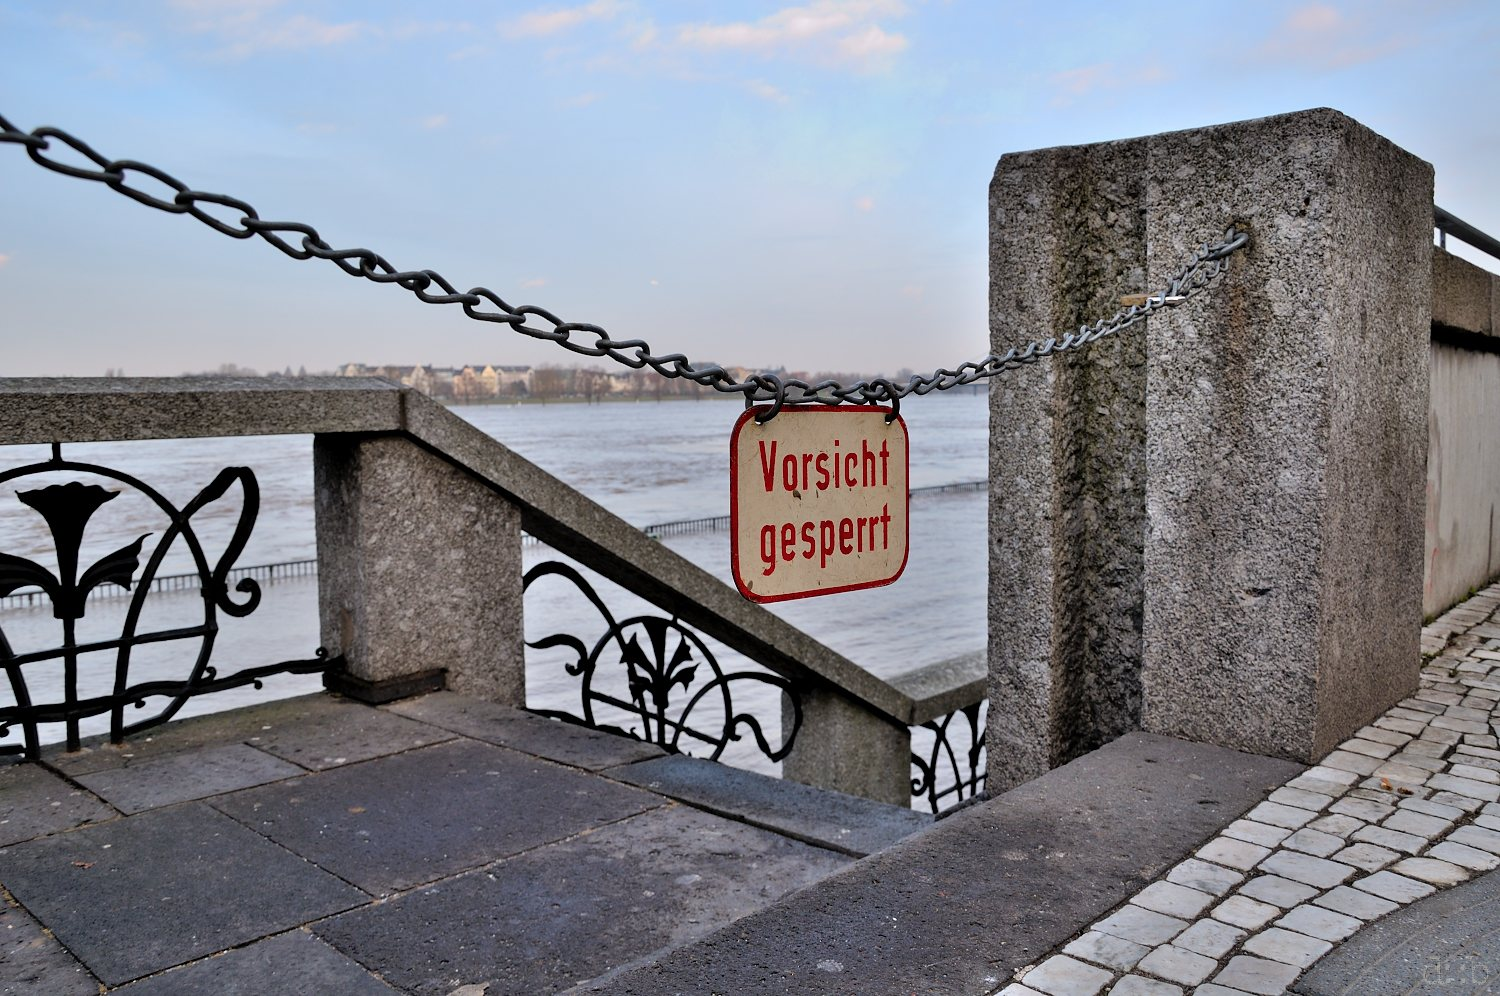 A barrier chain with a warning sign is to keep people away from a Rhine-flooded area in Düsseldorf.